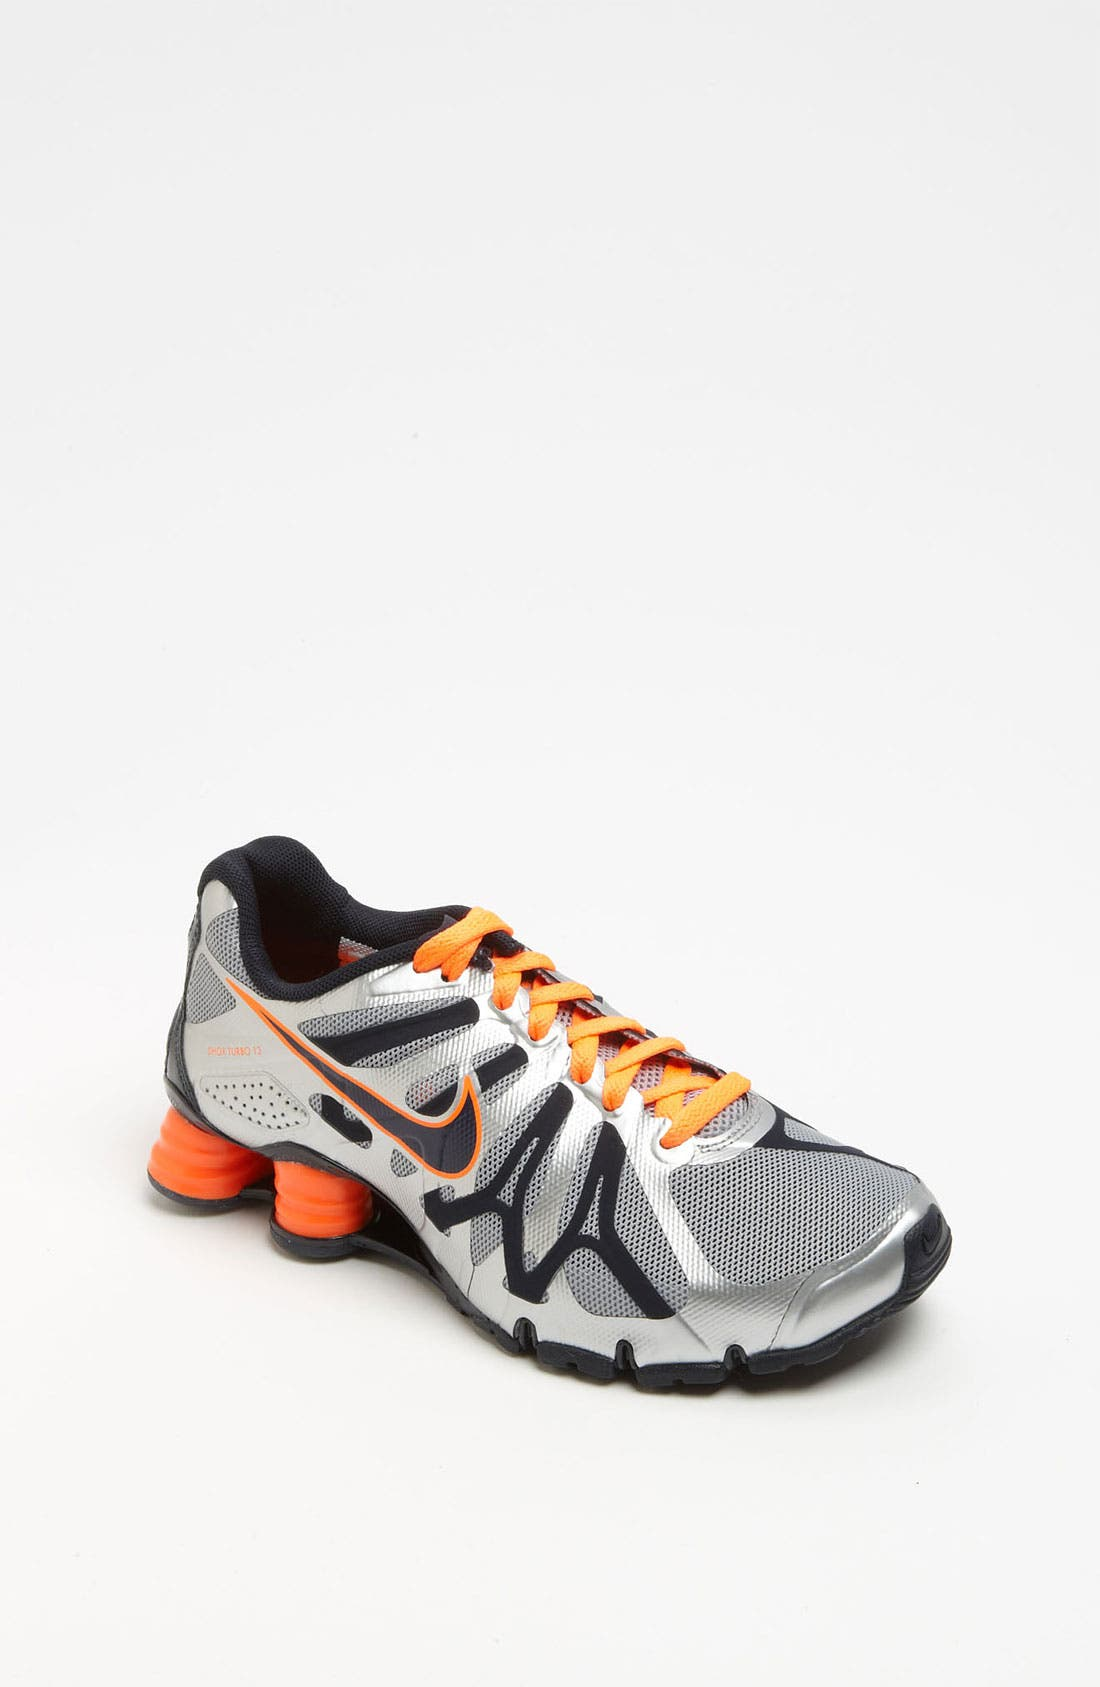 Alternate Image 1 Selected - Nike 'Shox Turbo 13' Running Shoe (Big Kid)